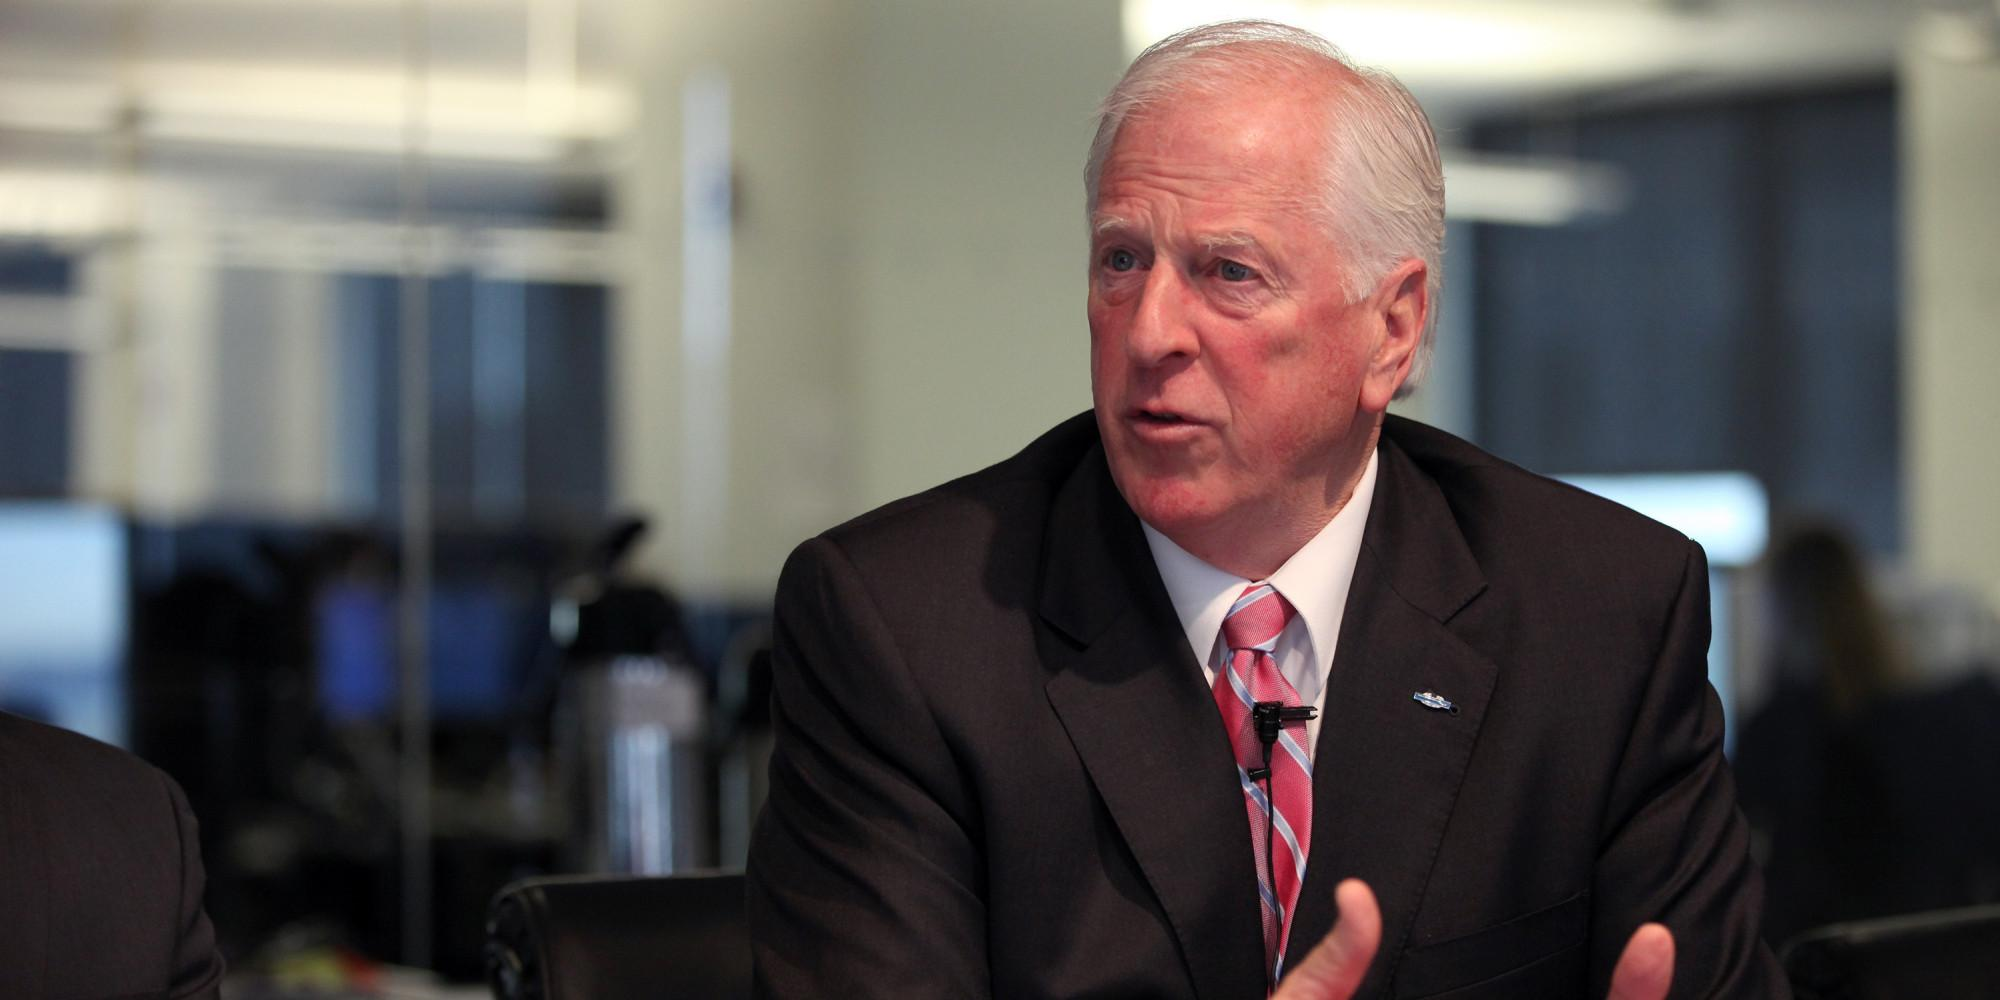 Rep. Mike Thompson supports background checks for all commercial gun sales.